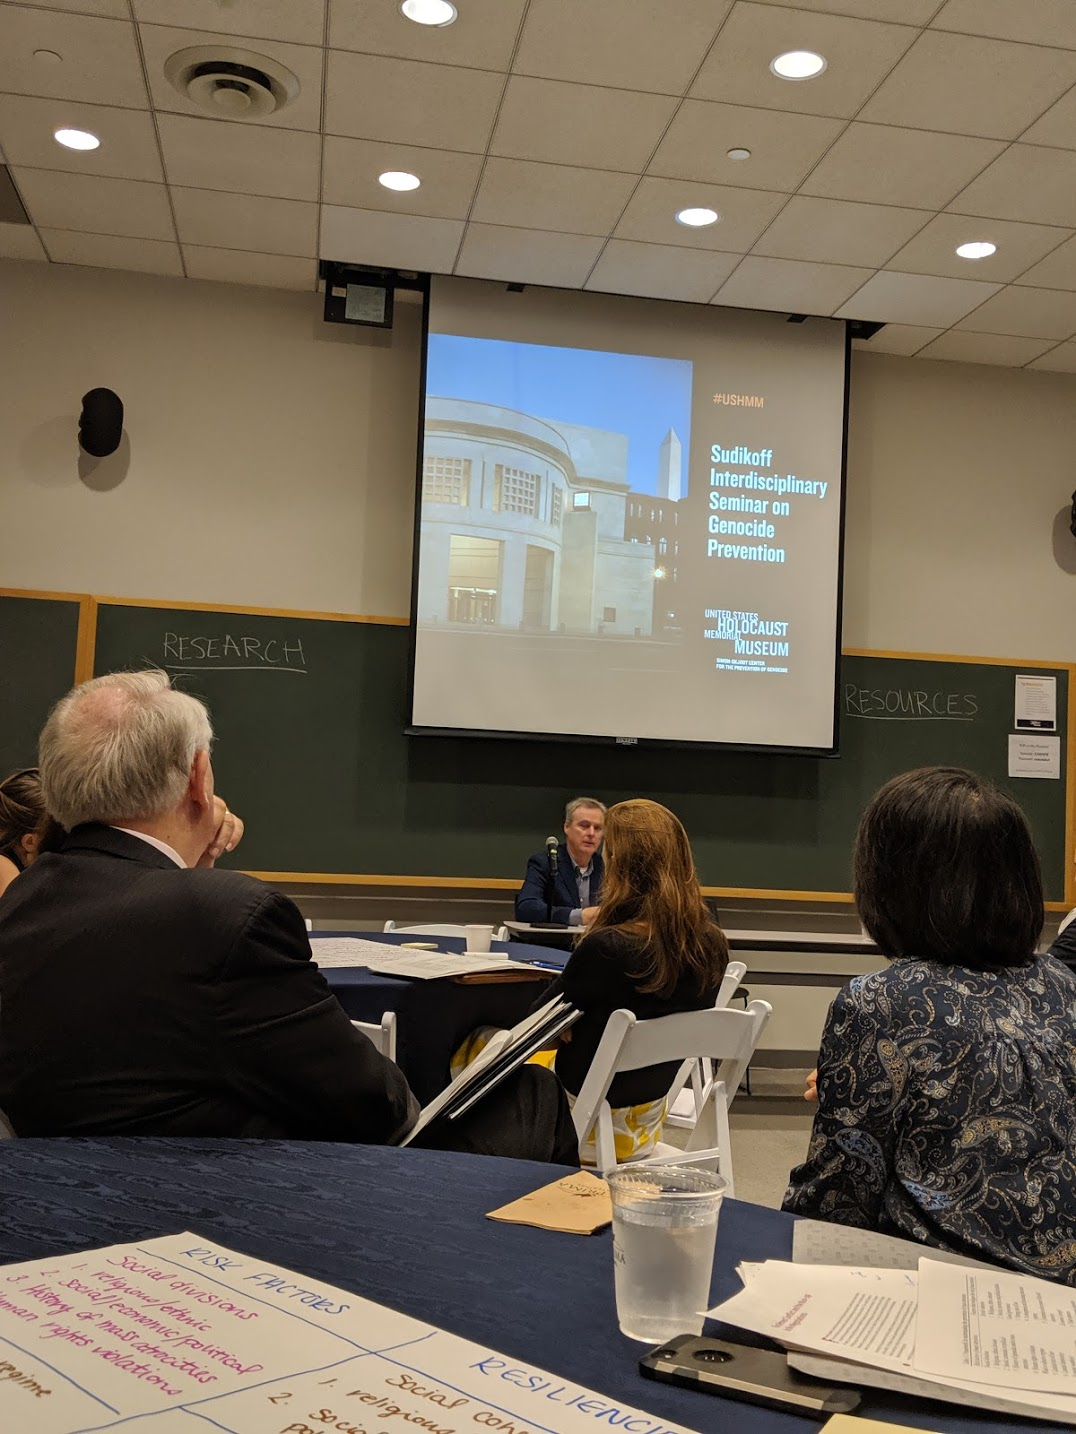 2019 Sudikoff Seminar on Genocide Prevention, US Holocaust Memorial Museum